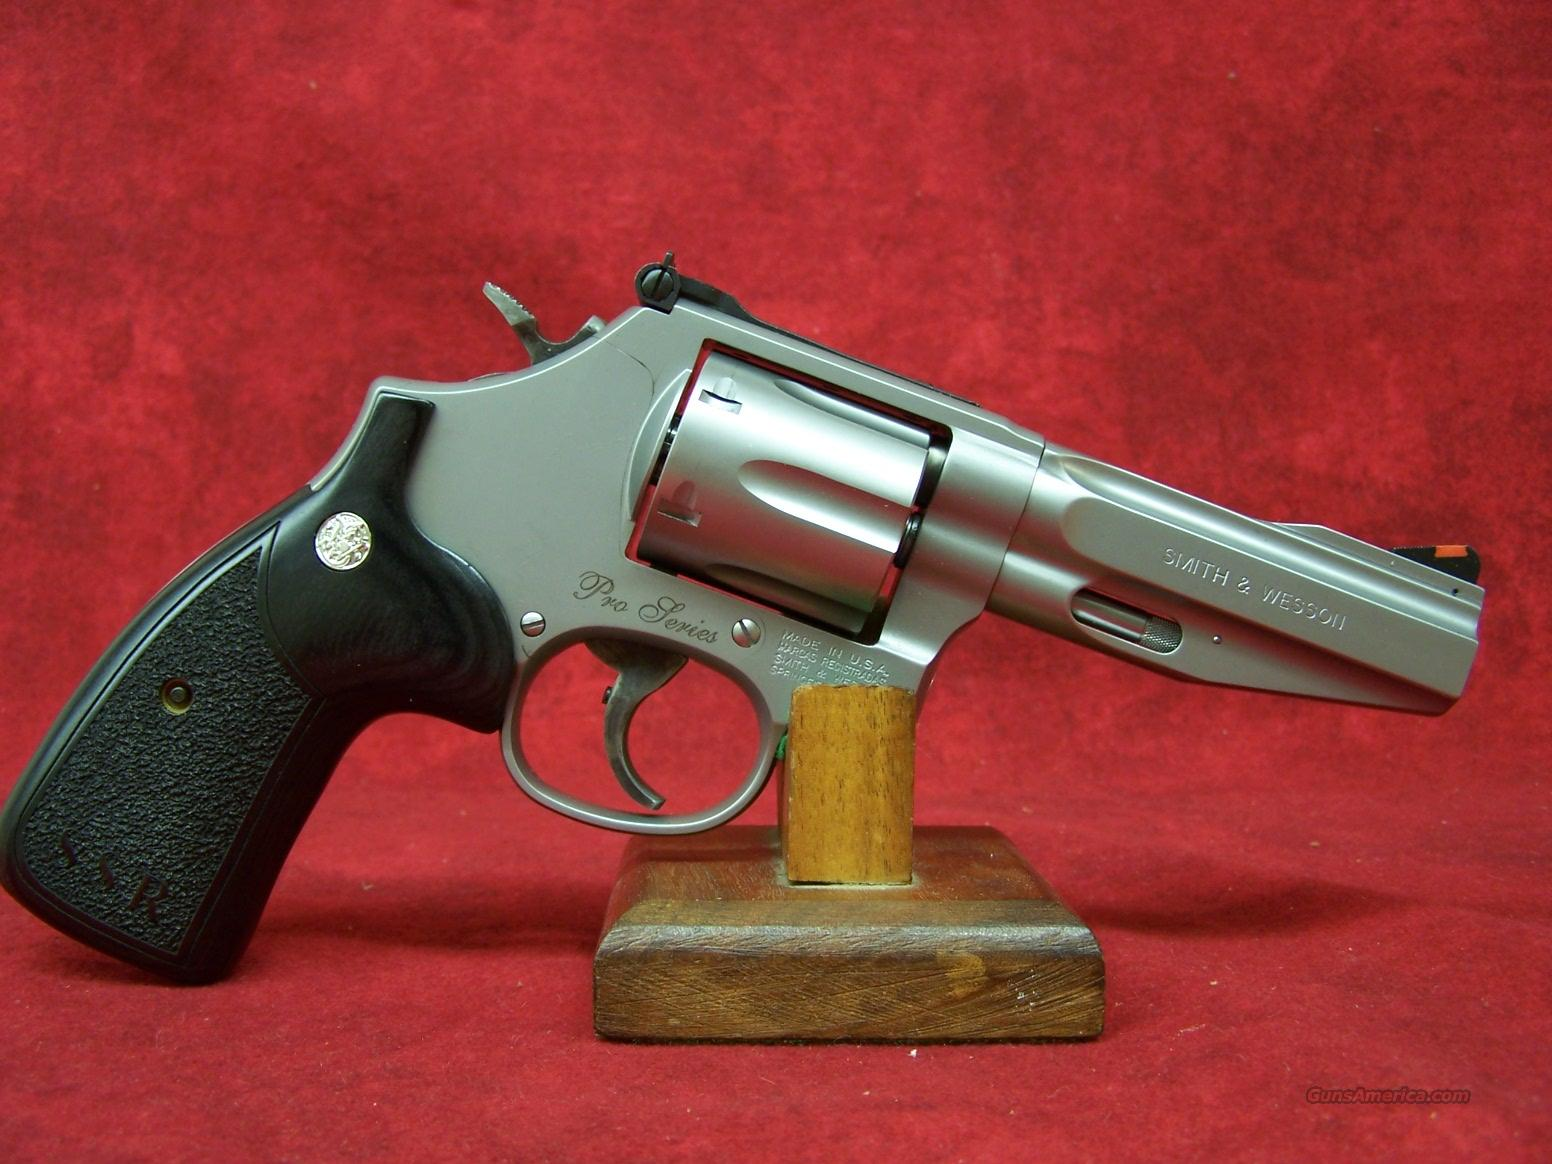 Smith & Wesson 686 SSR .357 Mag(178012)  Guns > Pistols > Smith & Wesson Revolvers > Full Frame Revolver